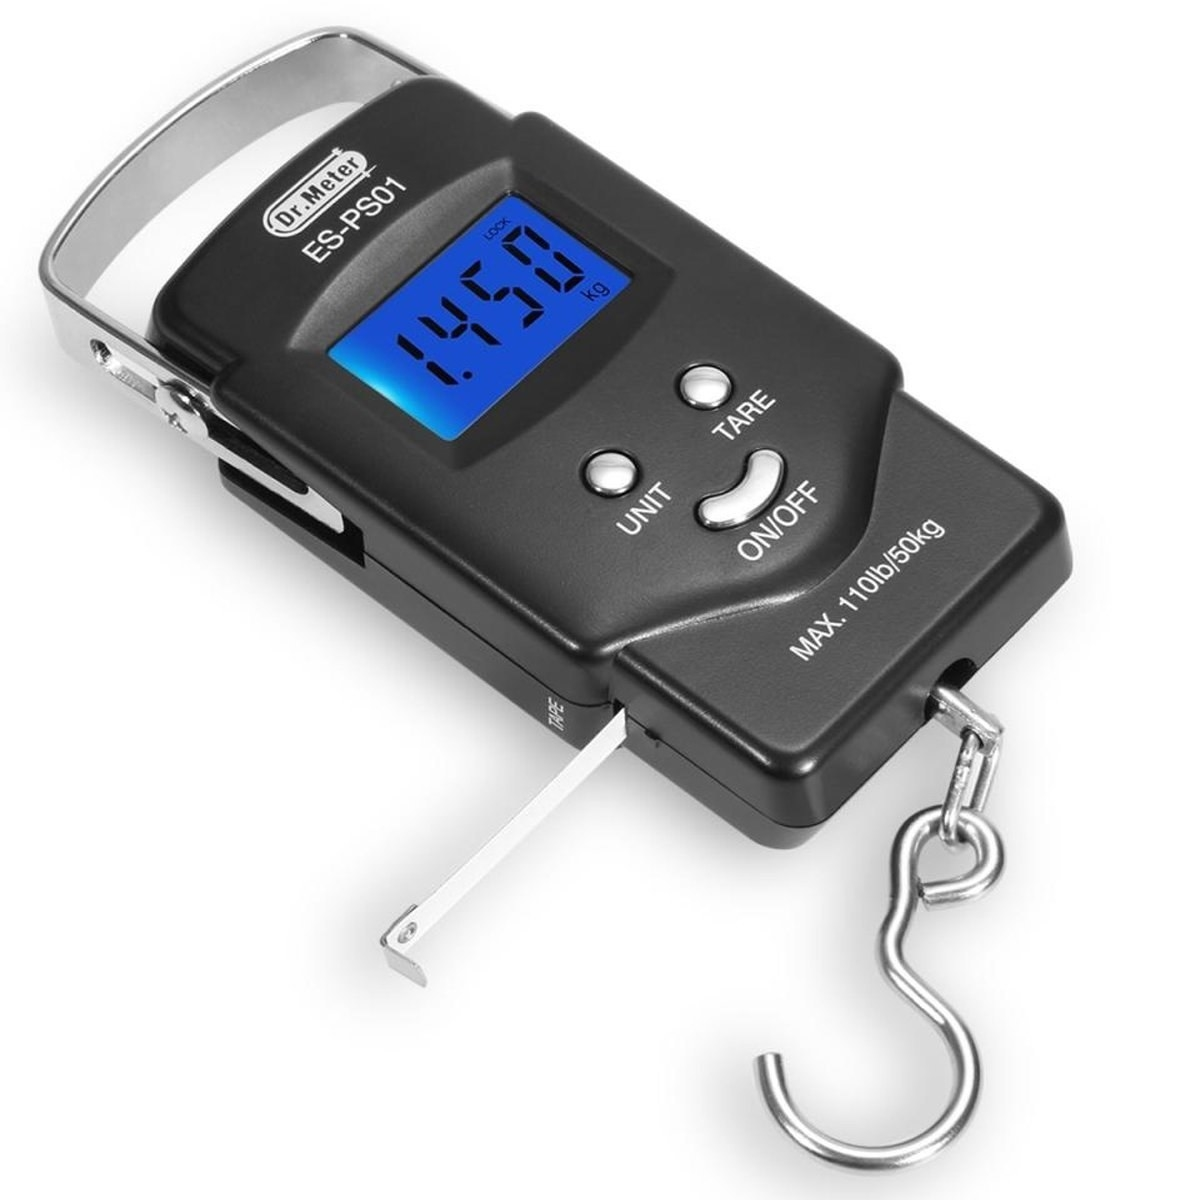 2. This digital LCD display hanging hook scale for weighing and measuring your catch.